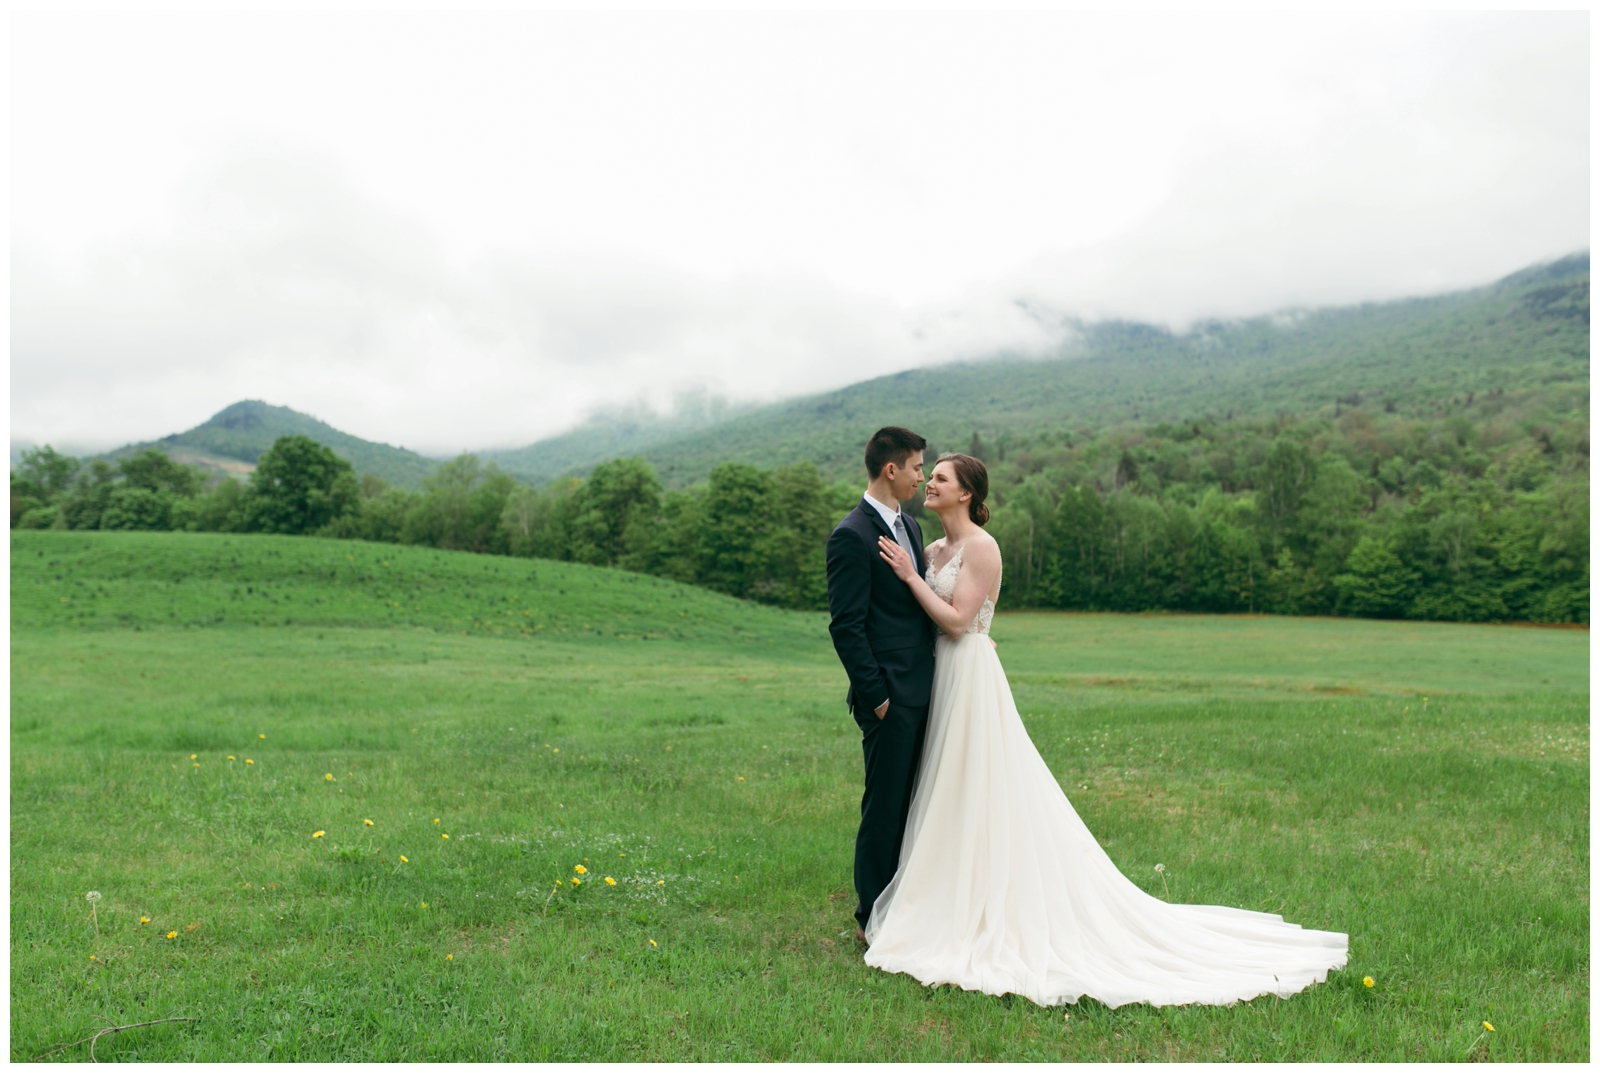 Vermont-Elopement-Topnotch-Stowe-Wedding-Bailey-Q-Photo-Boston-Wedding-Photographer-020.jpg